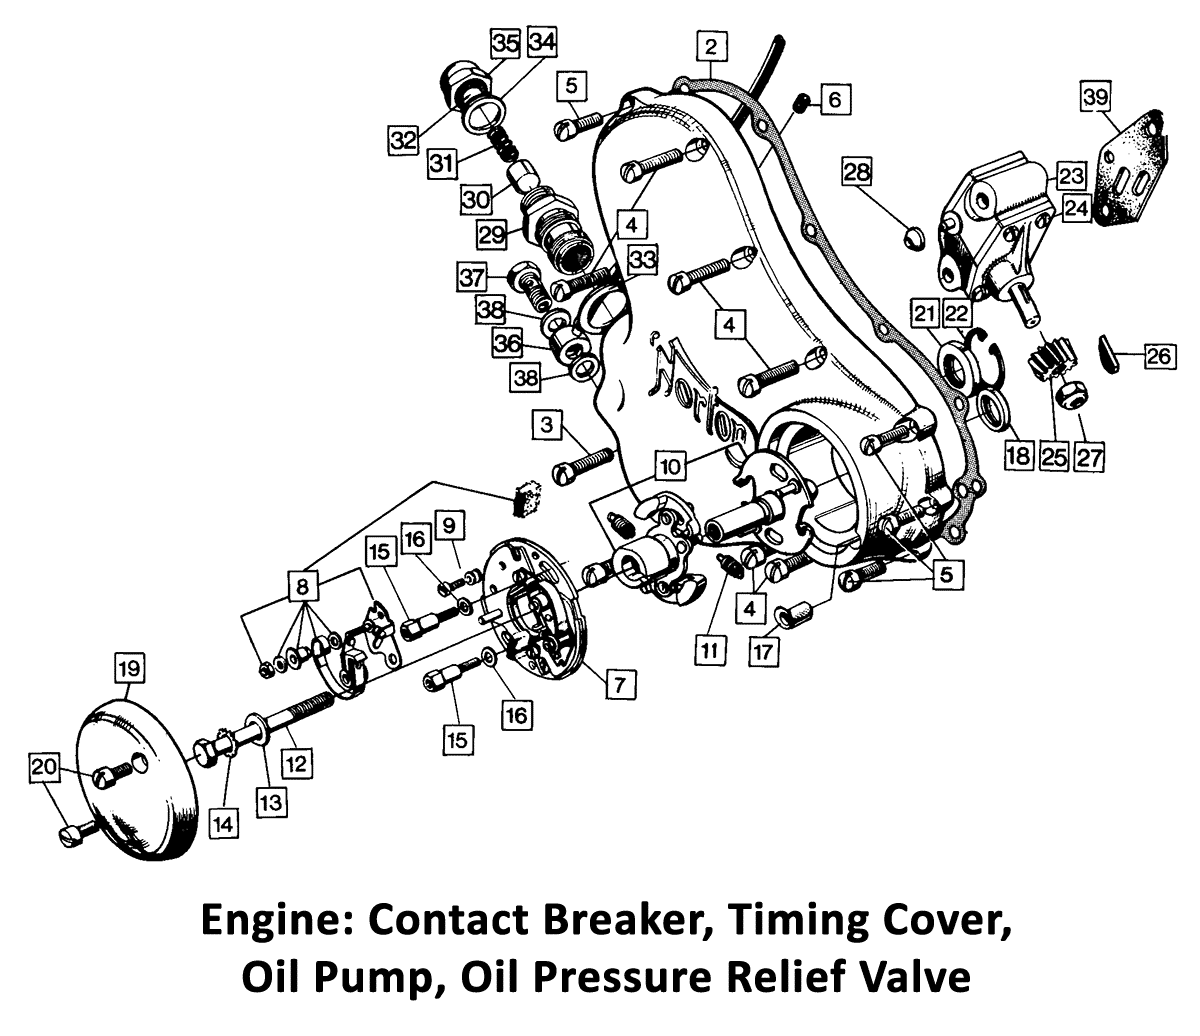 1973-74 Norton Commando 750 & 850 Engine: Contact Breaker, Timing Cover, Oil Pump, Oil Pressure Relief Valve